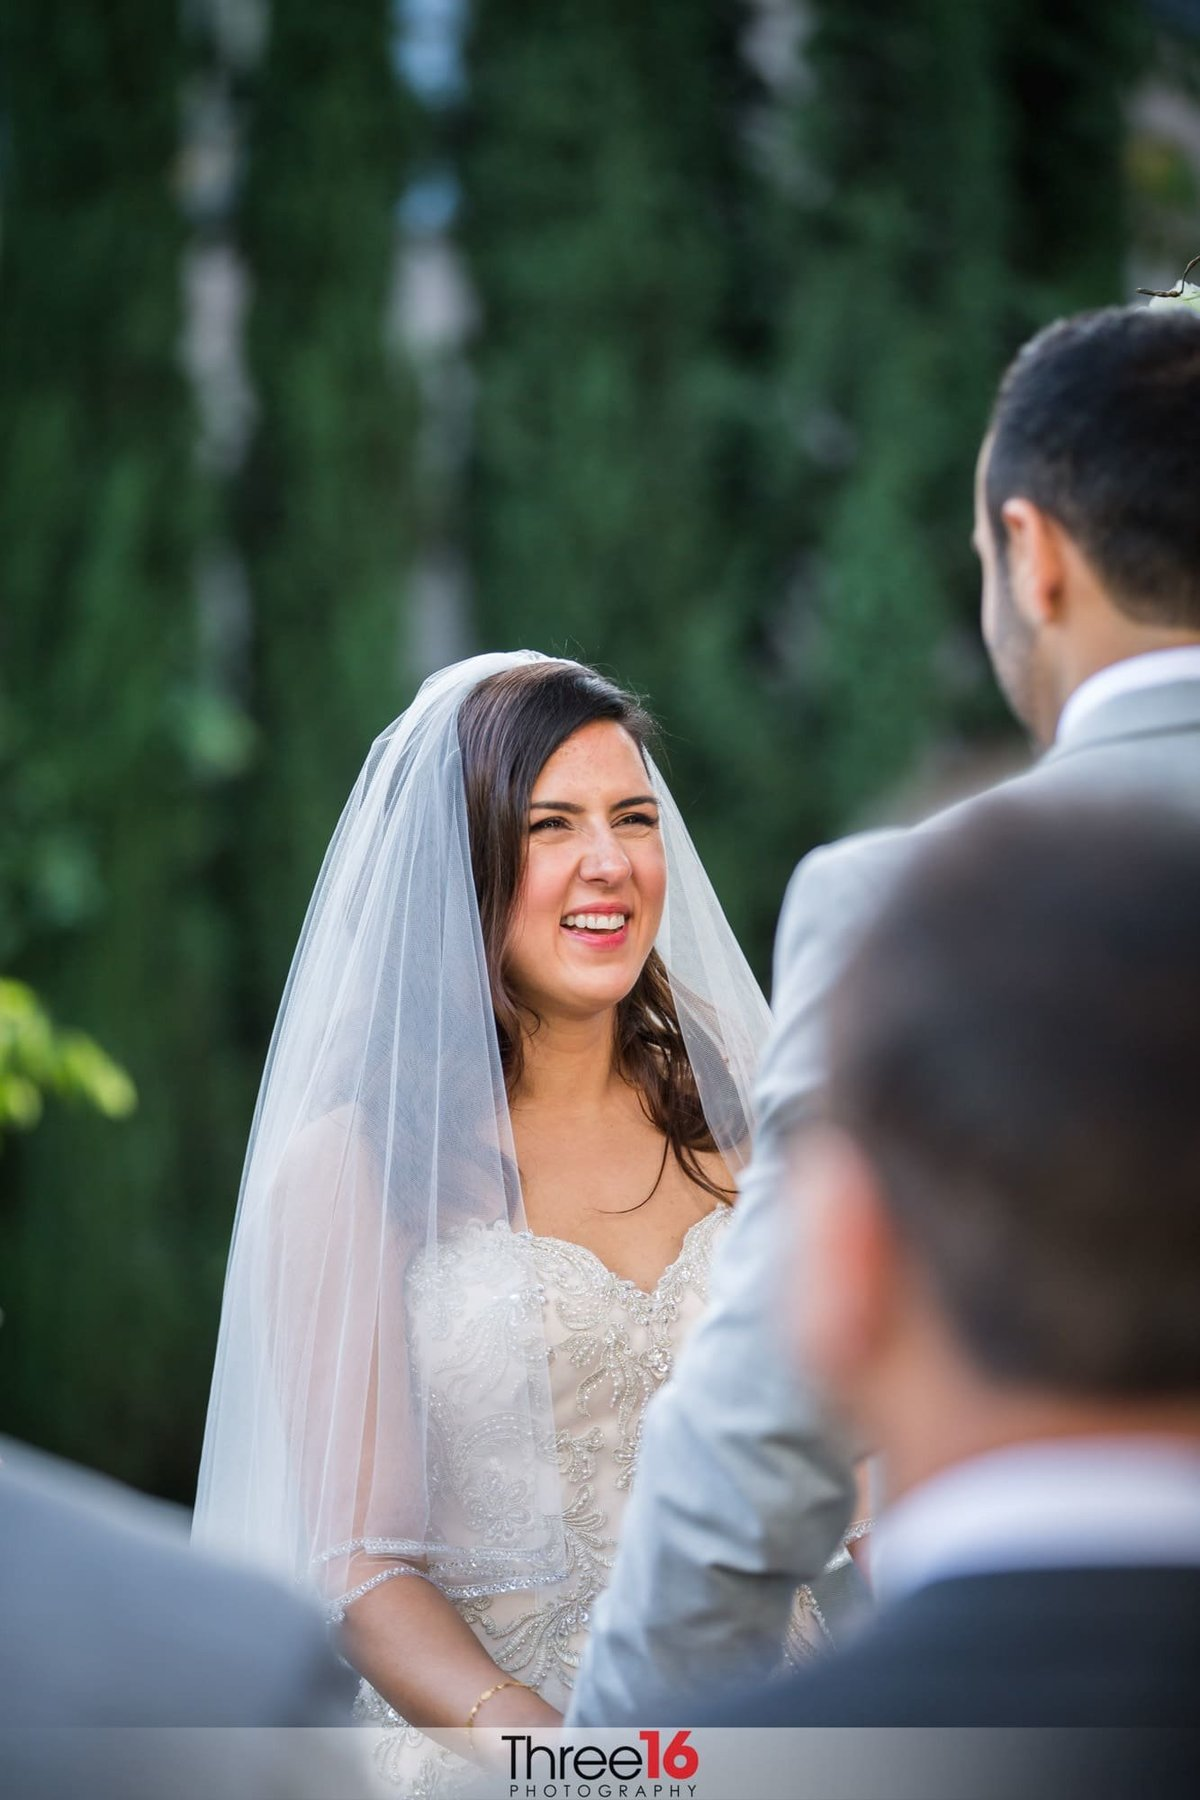 Bride smiles big at her Groom during the ceremony